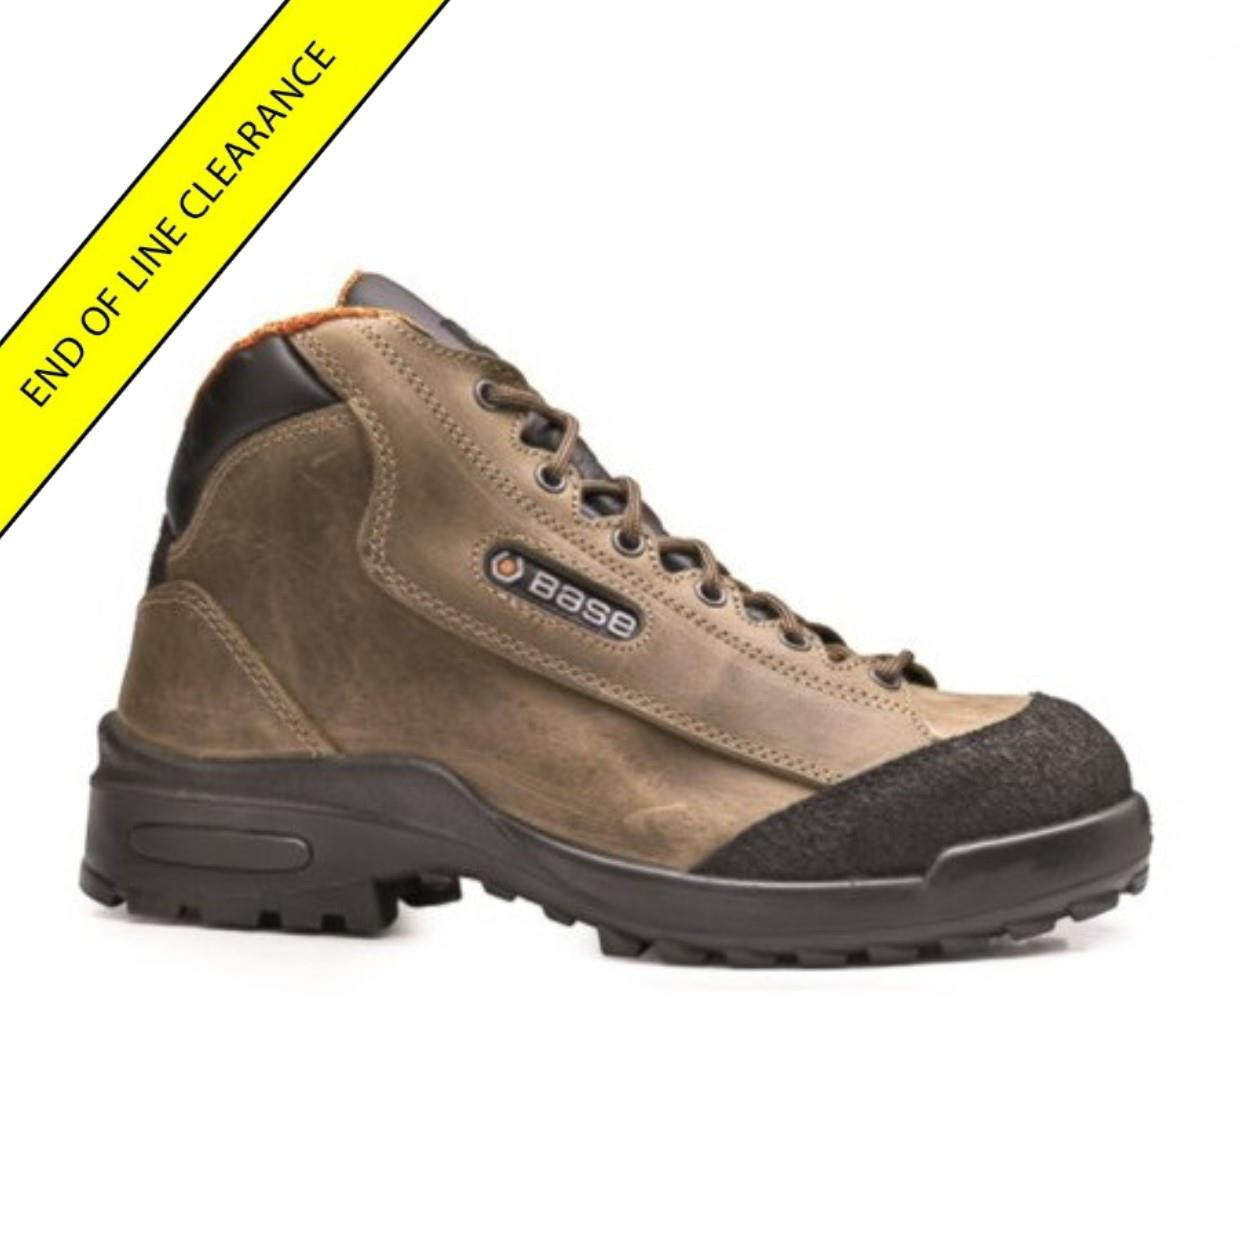 Base B186 Geldof Safety Boot; S3 SRC. EN-ISO 20345: 2011; Size 8 (42)